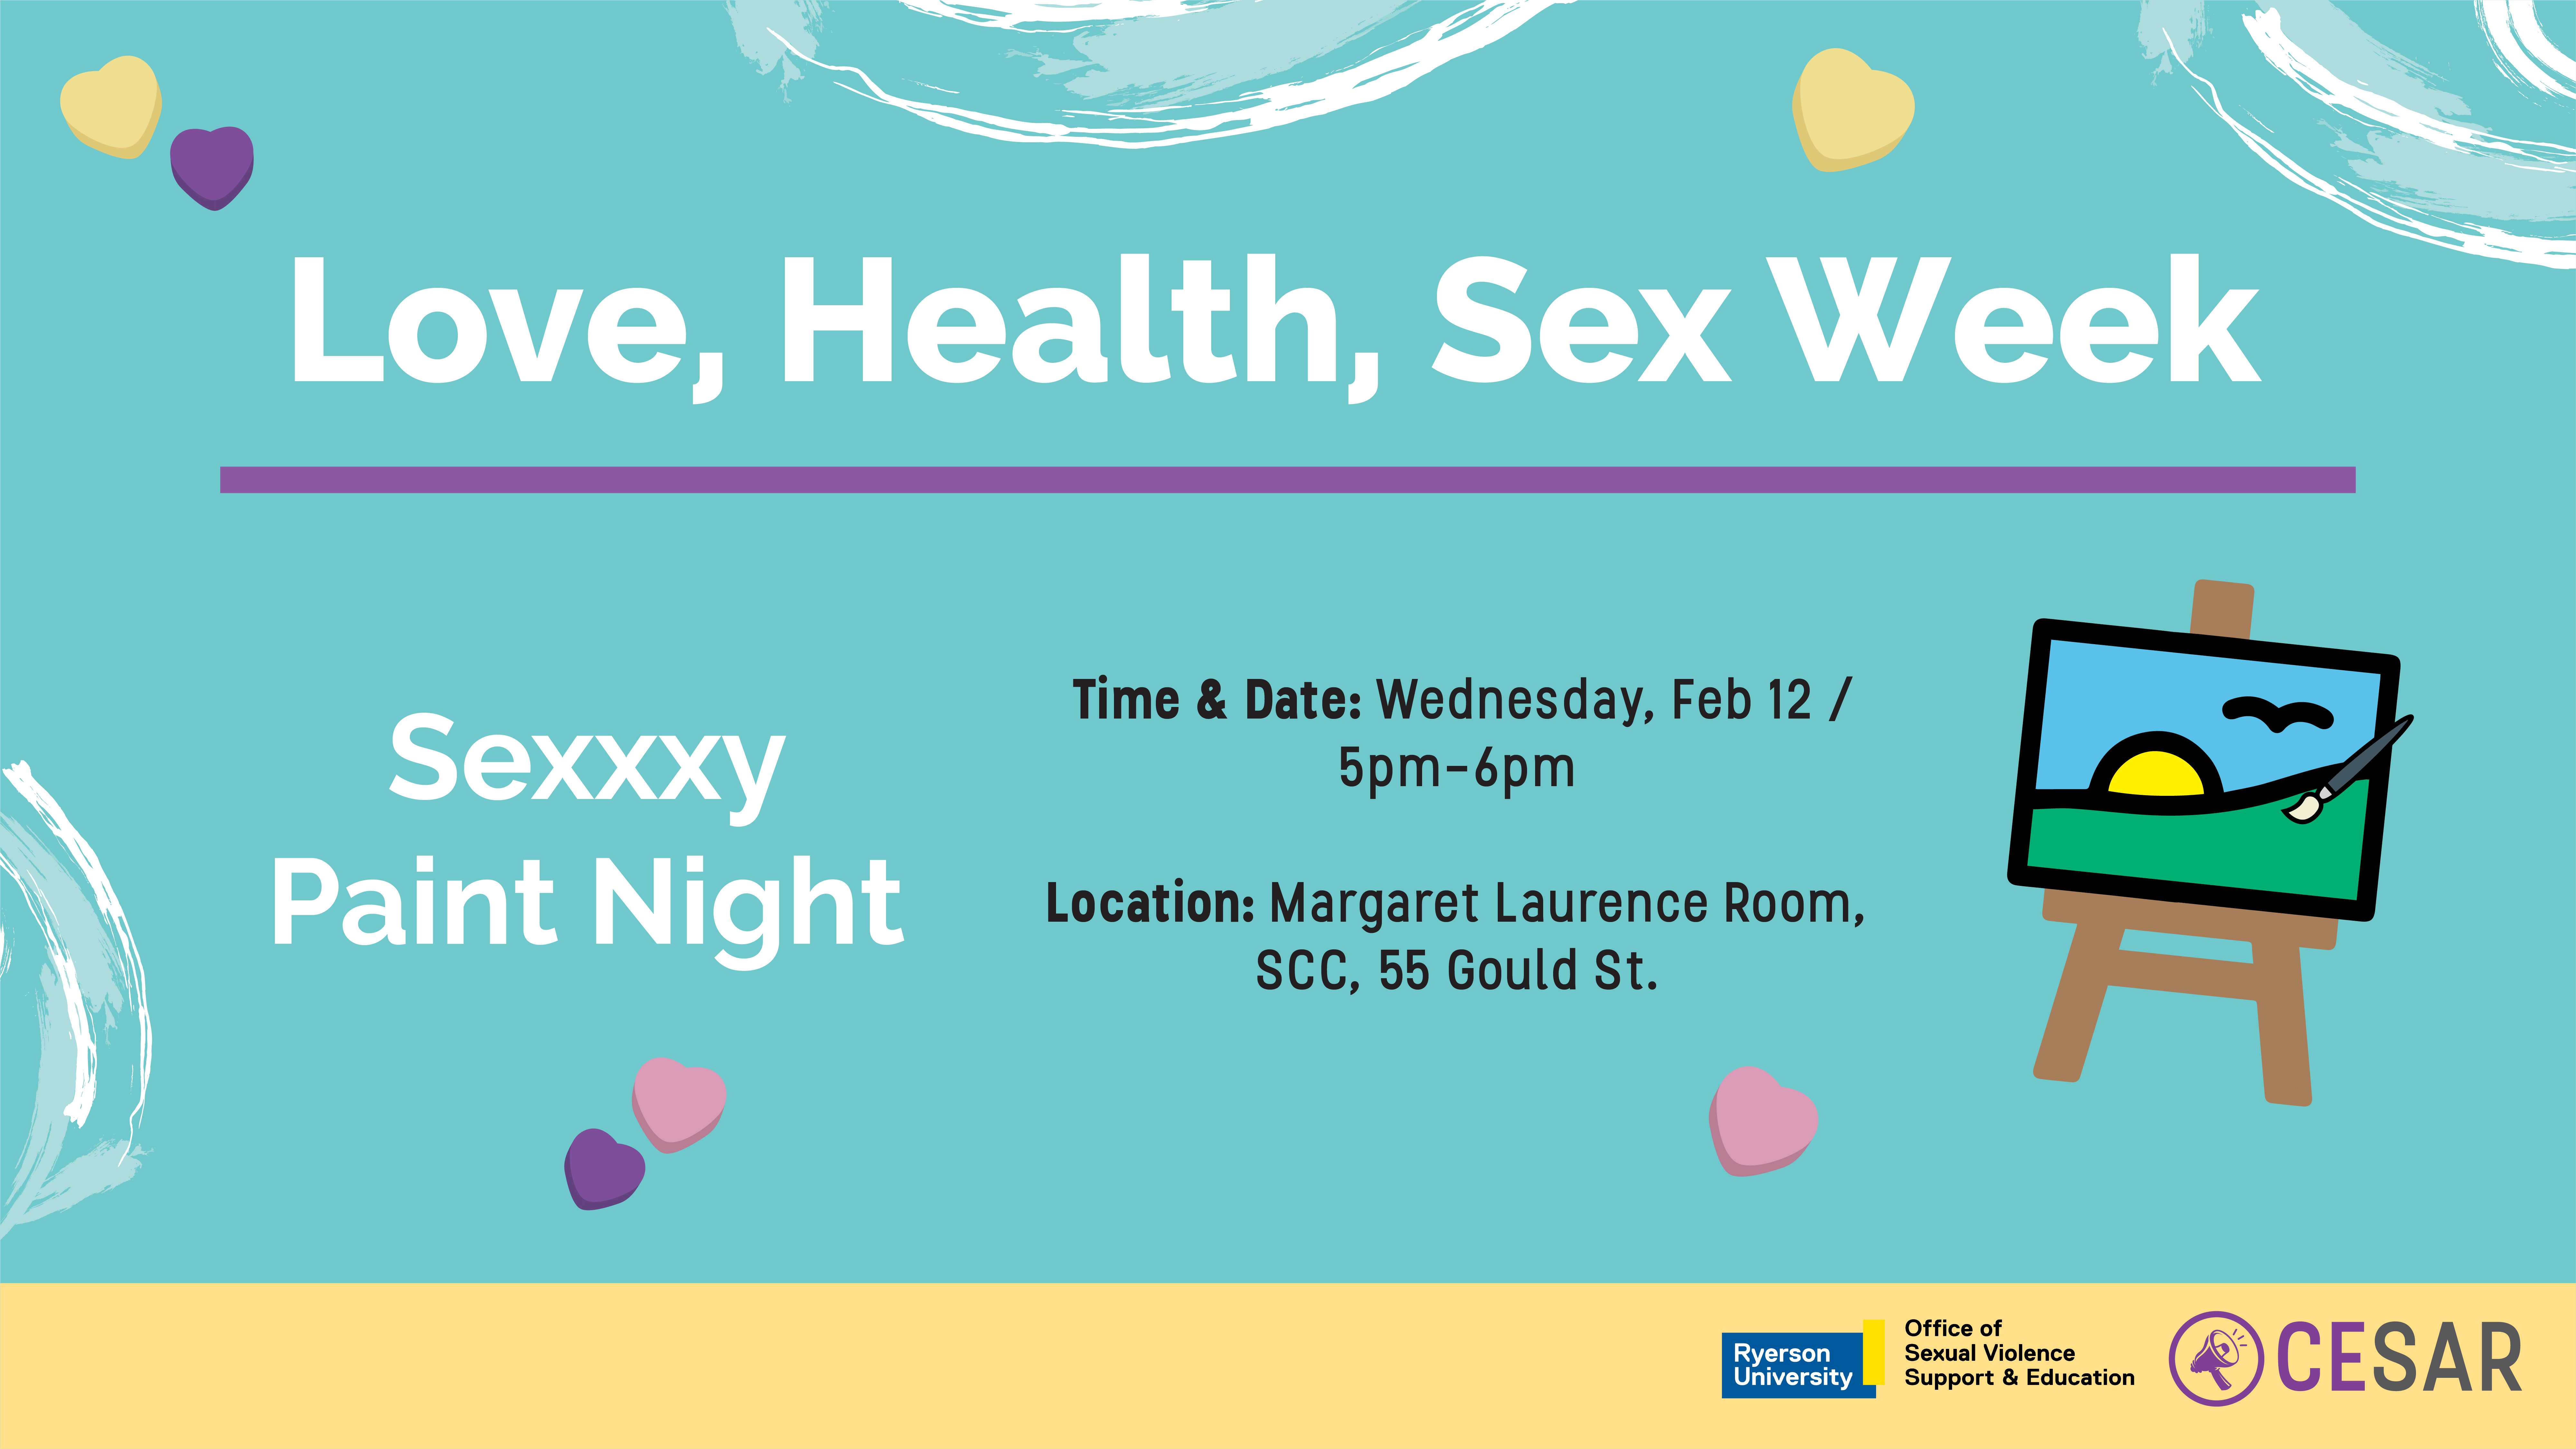 LHS - Sexxxy Paint Night